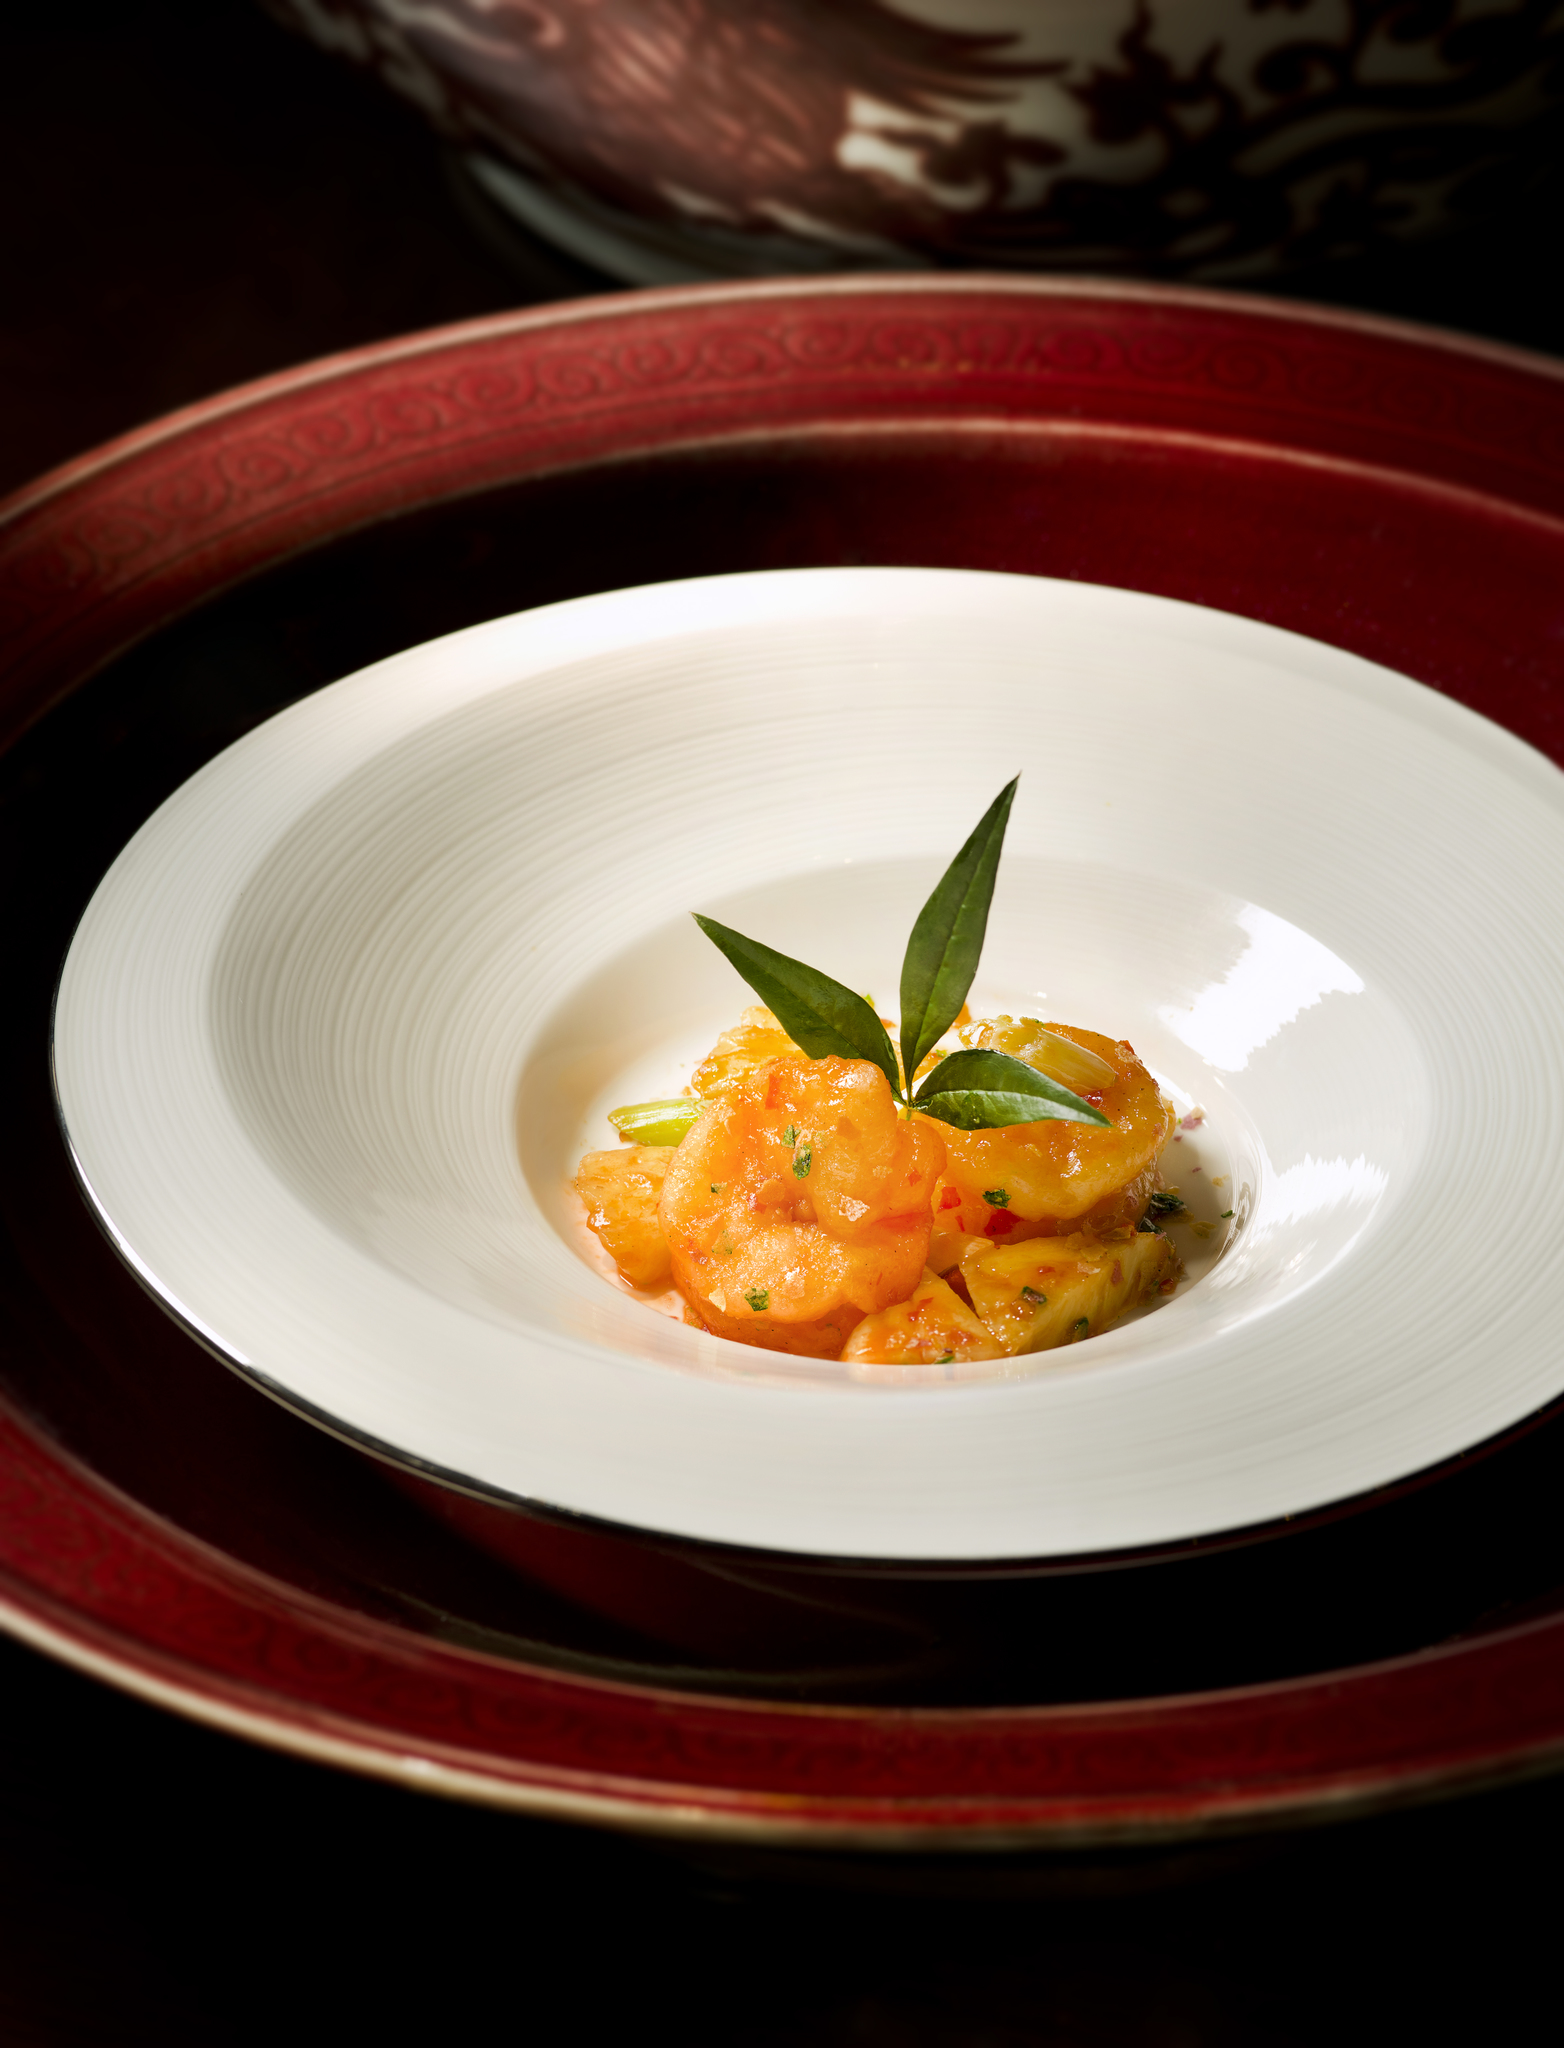 Lai Heen's pan-seared prawn with pineapple in grain white wine sauce